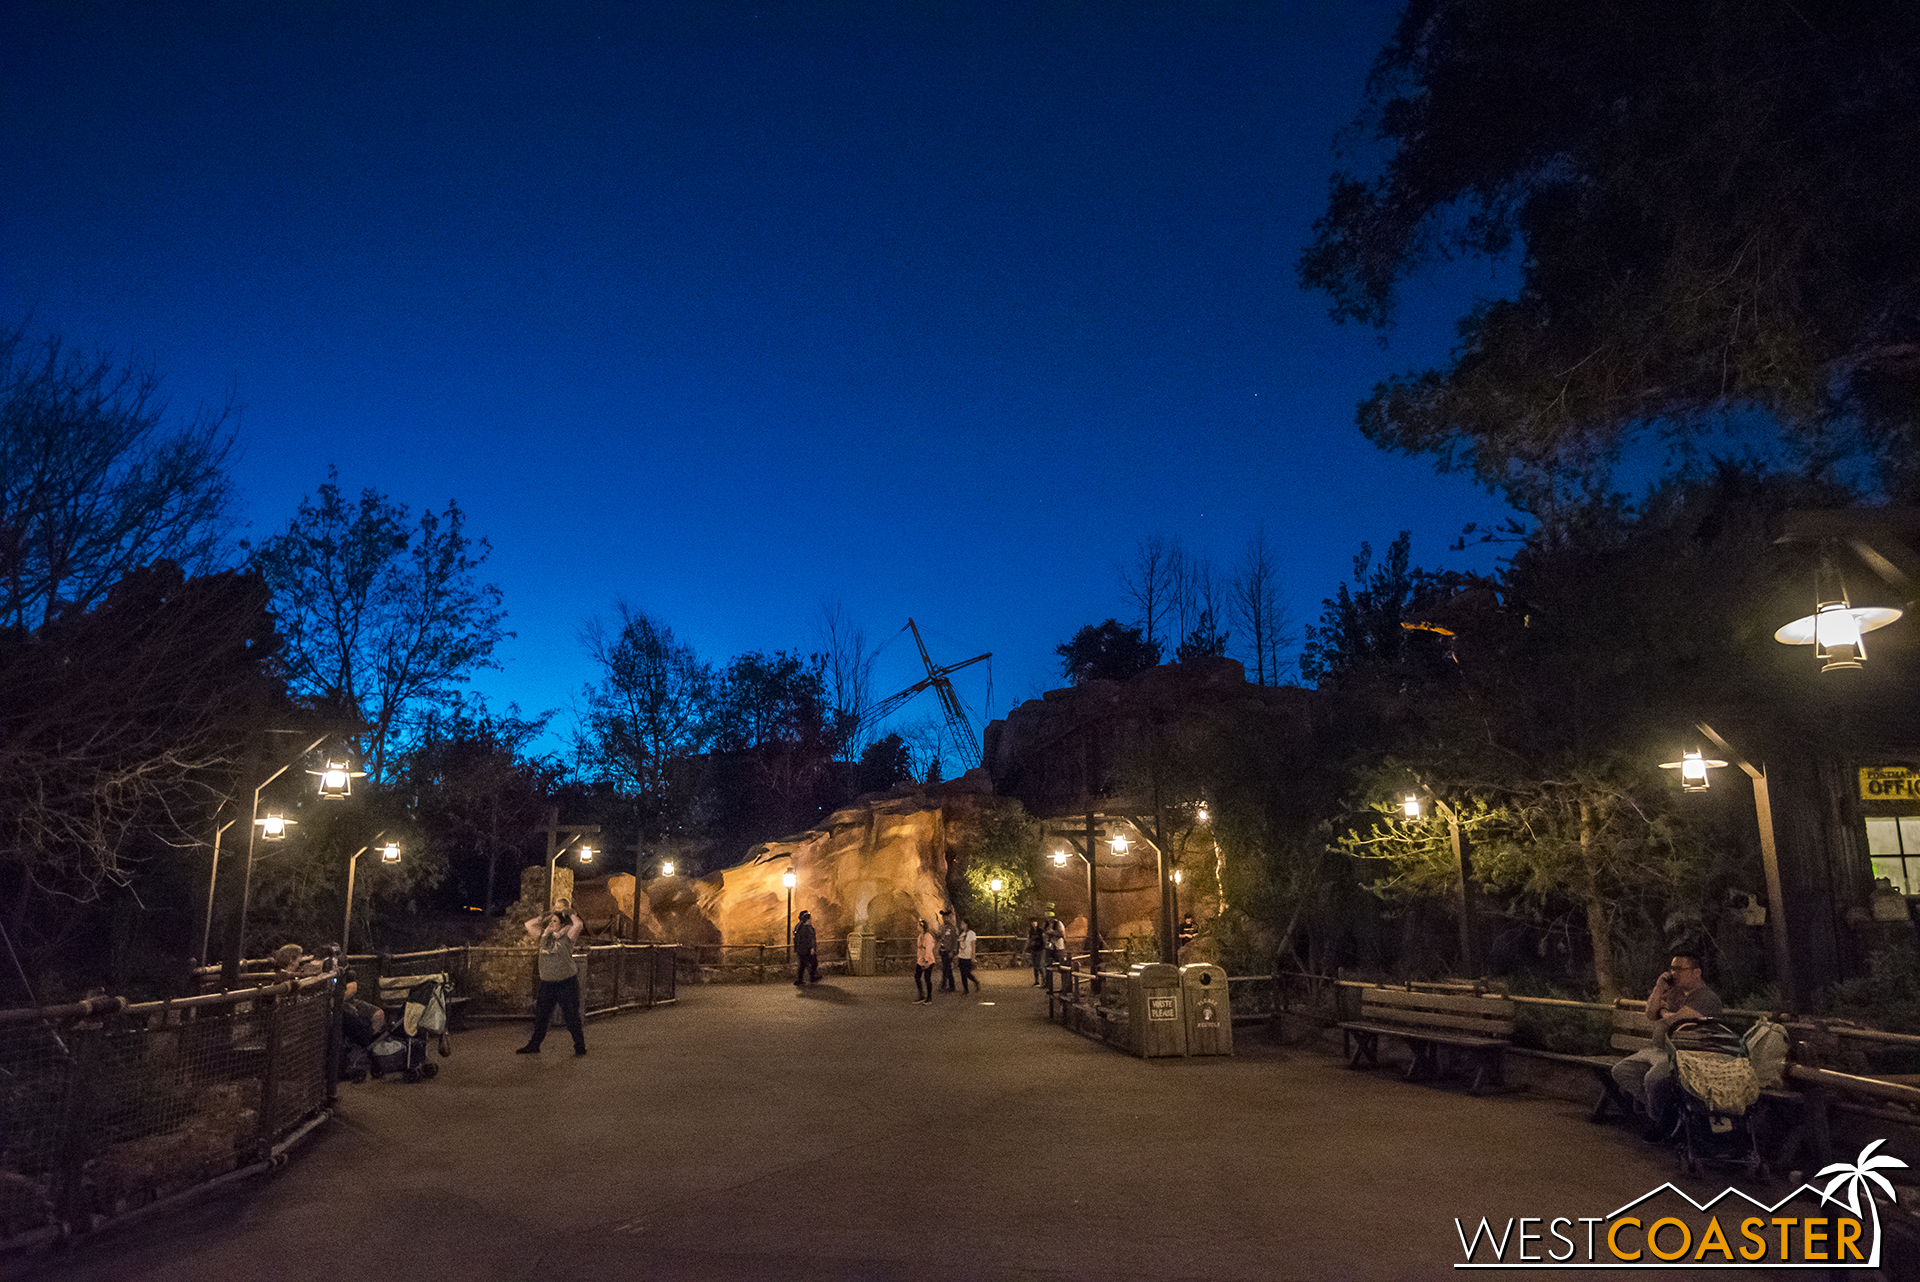 From inside the park, bits and pieces of construction progress can be glimpsed from places like Big Thunder Trail. But still not a whole lot!